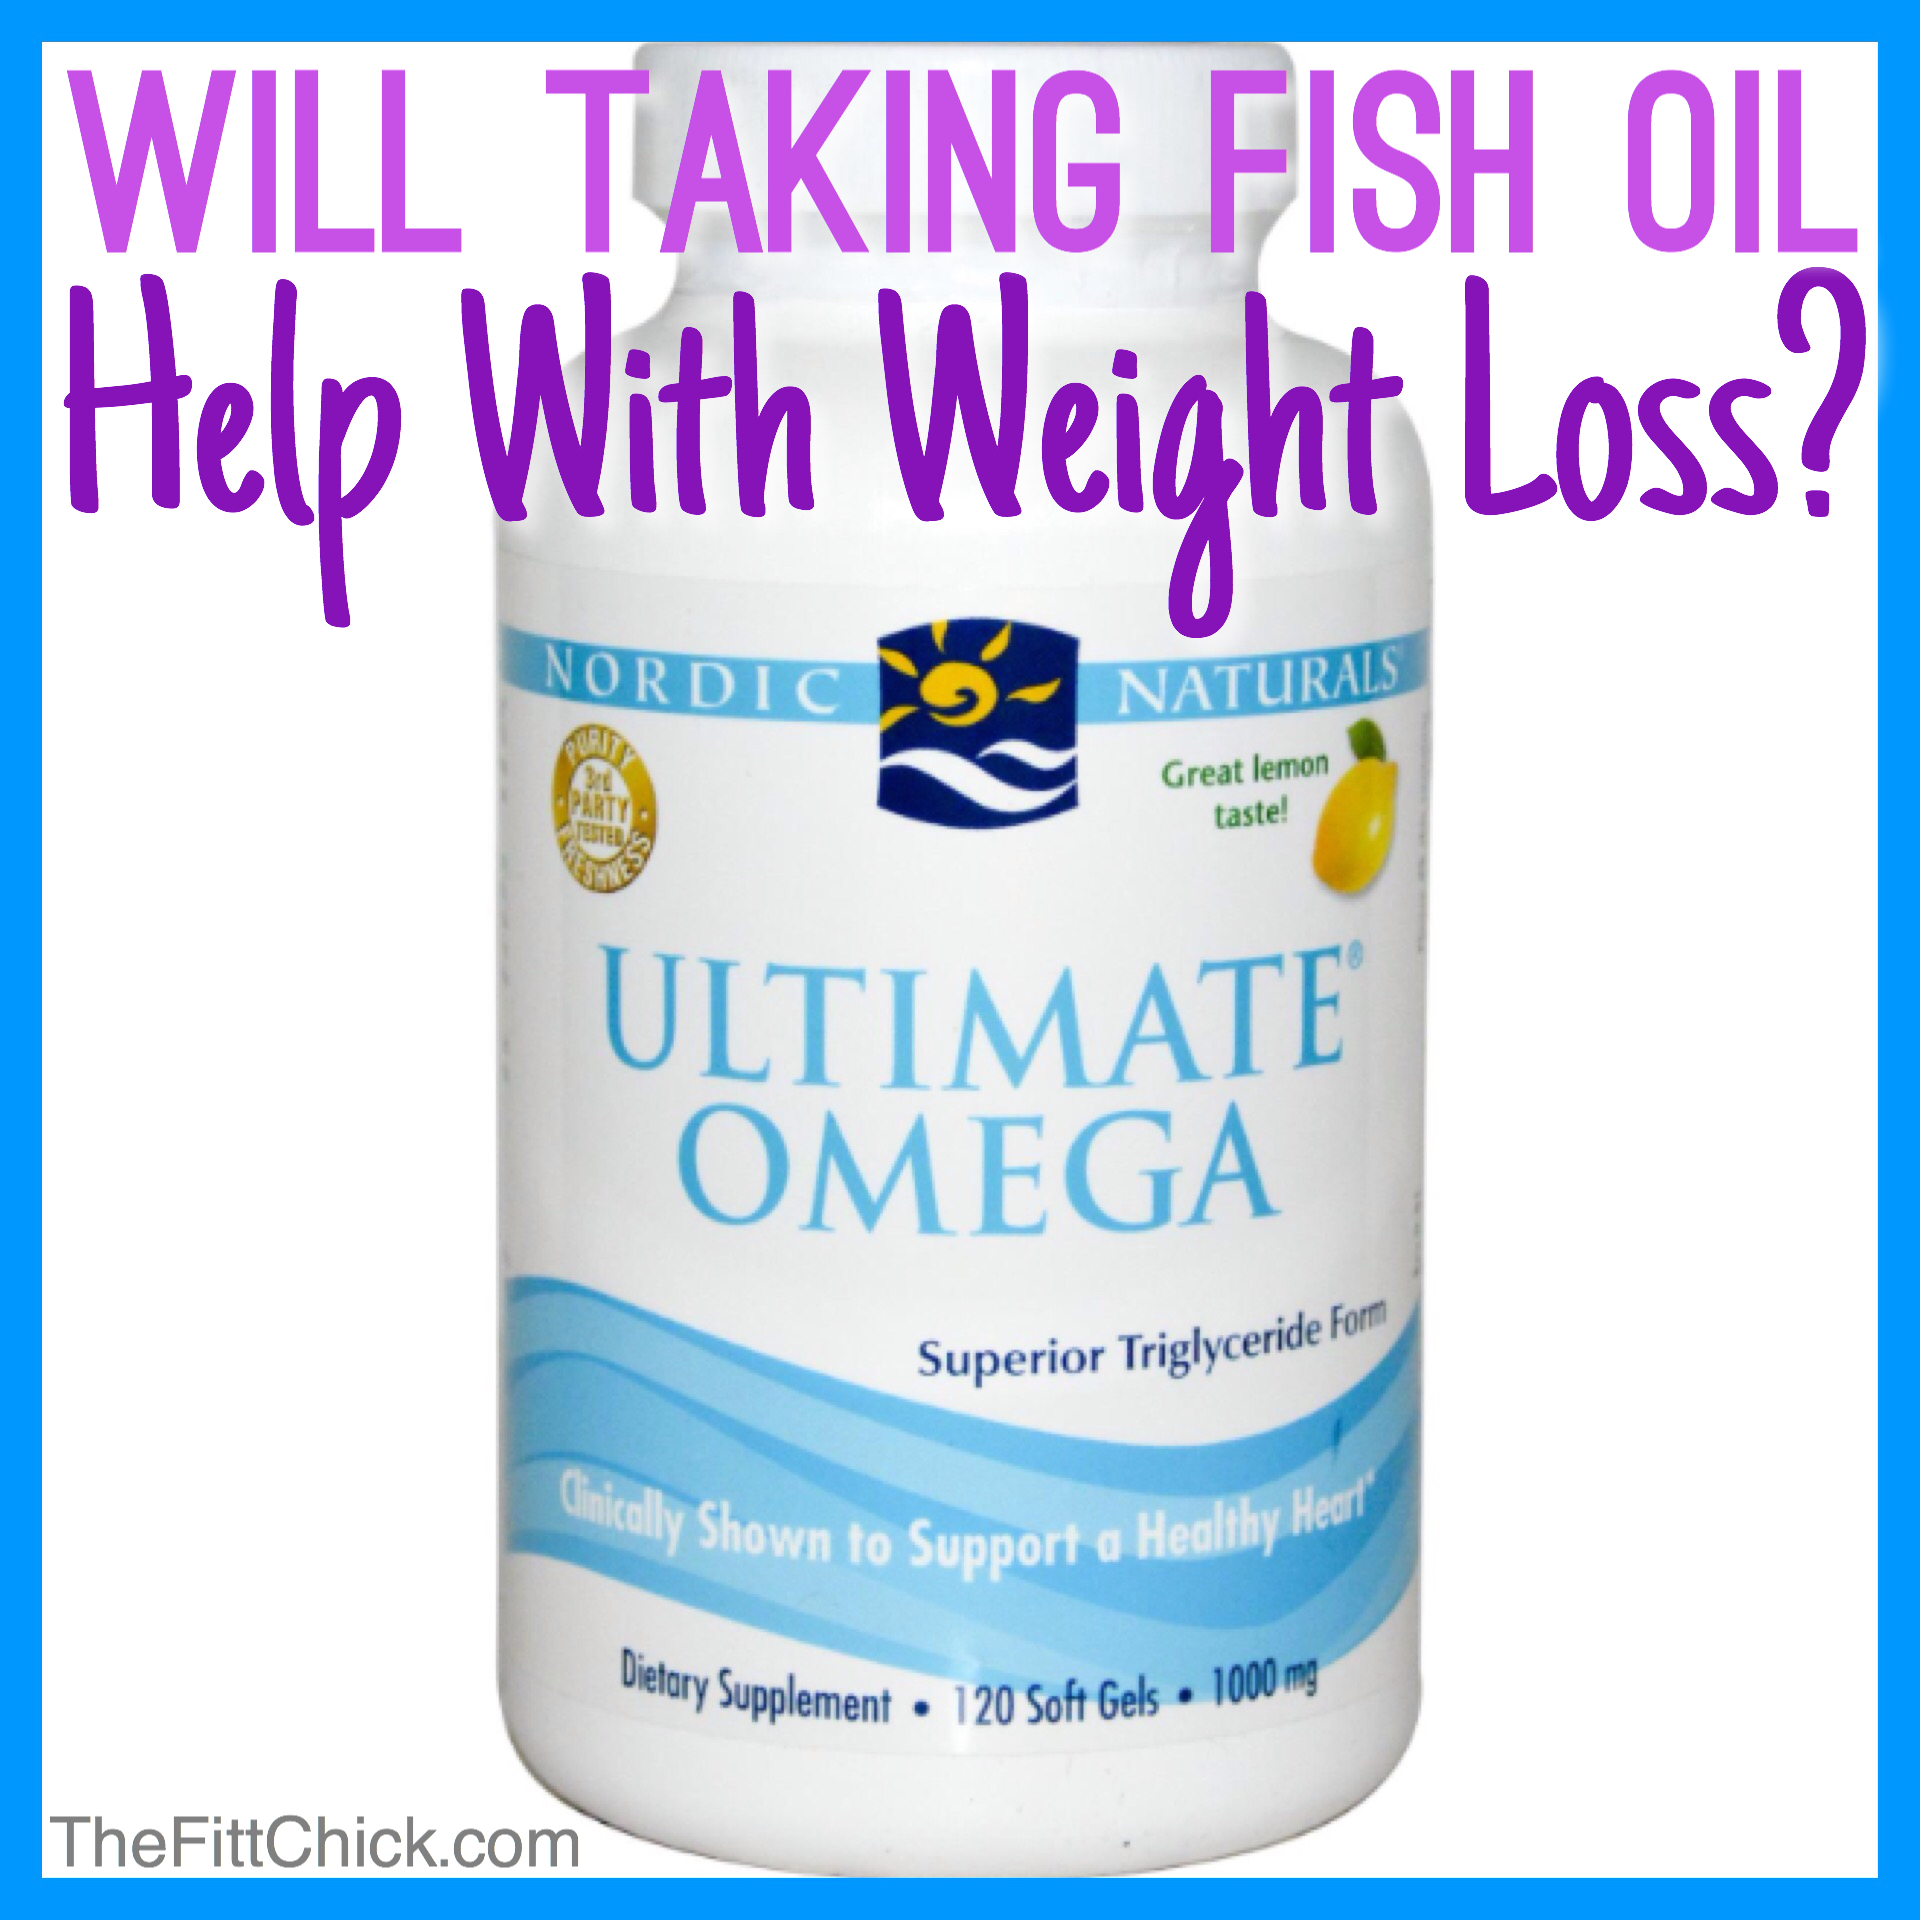 will taking fish oil help you lose weight? - thefittchick